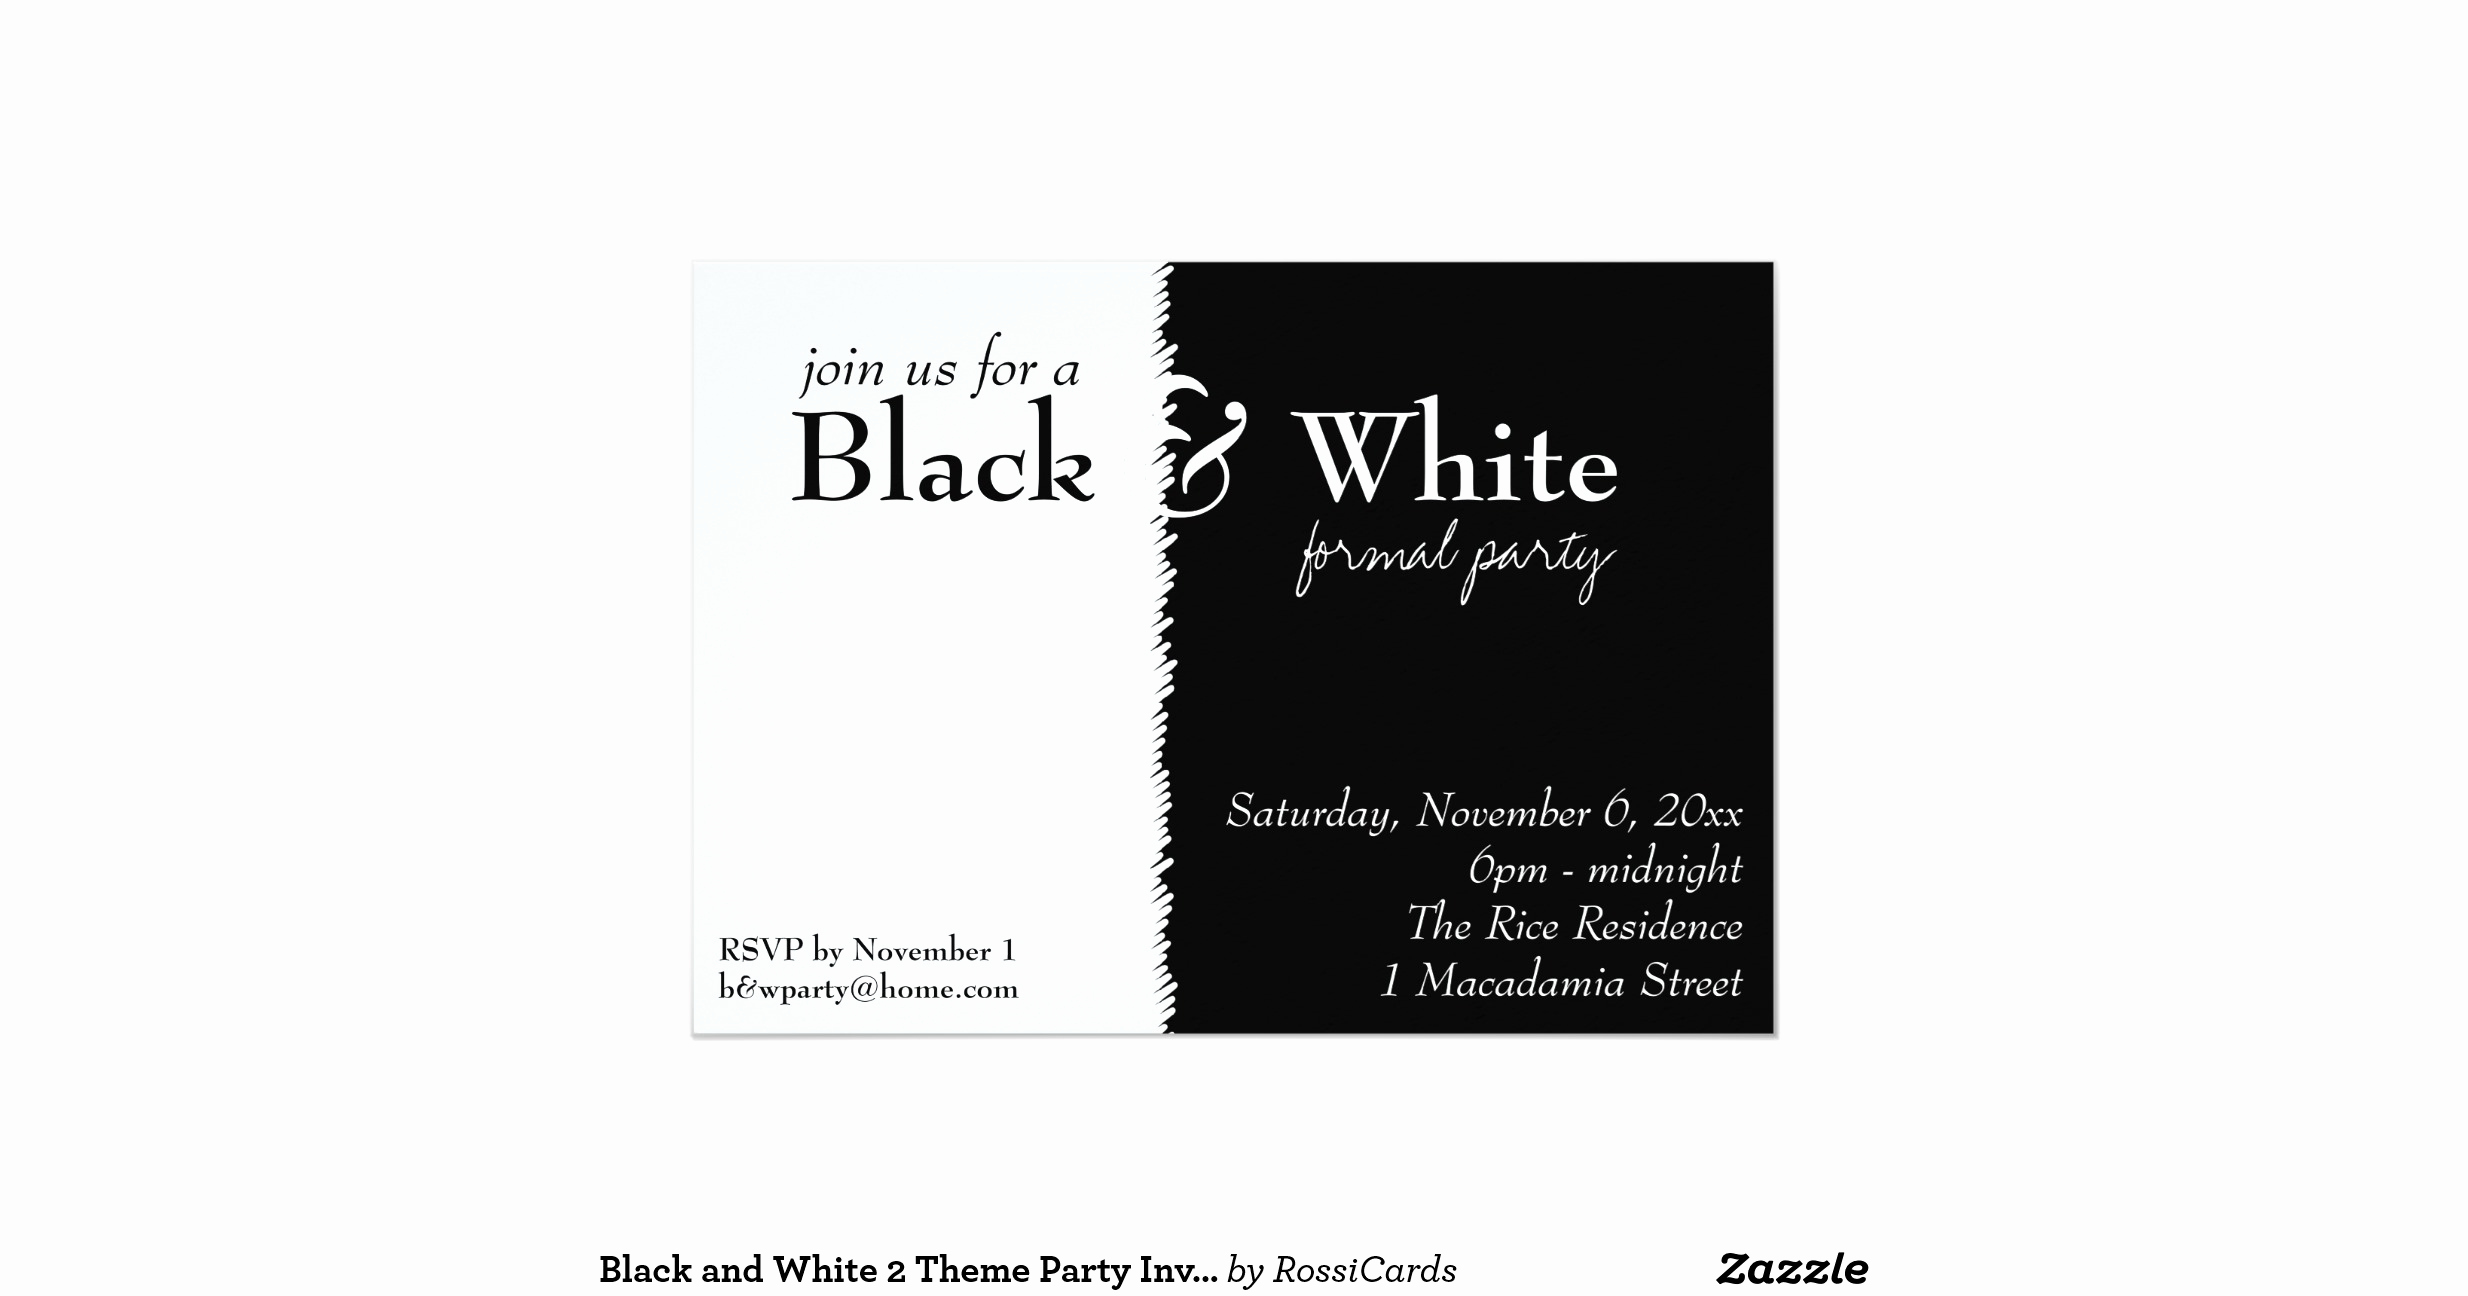 Black and White Invitation Luxury Black and White 2 theme Party Invitation